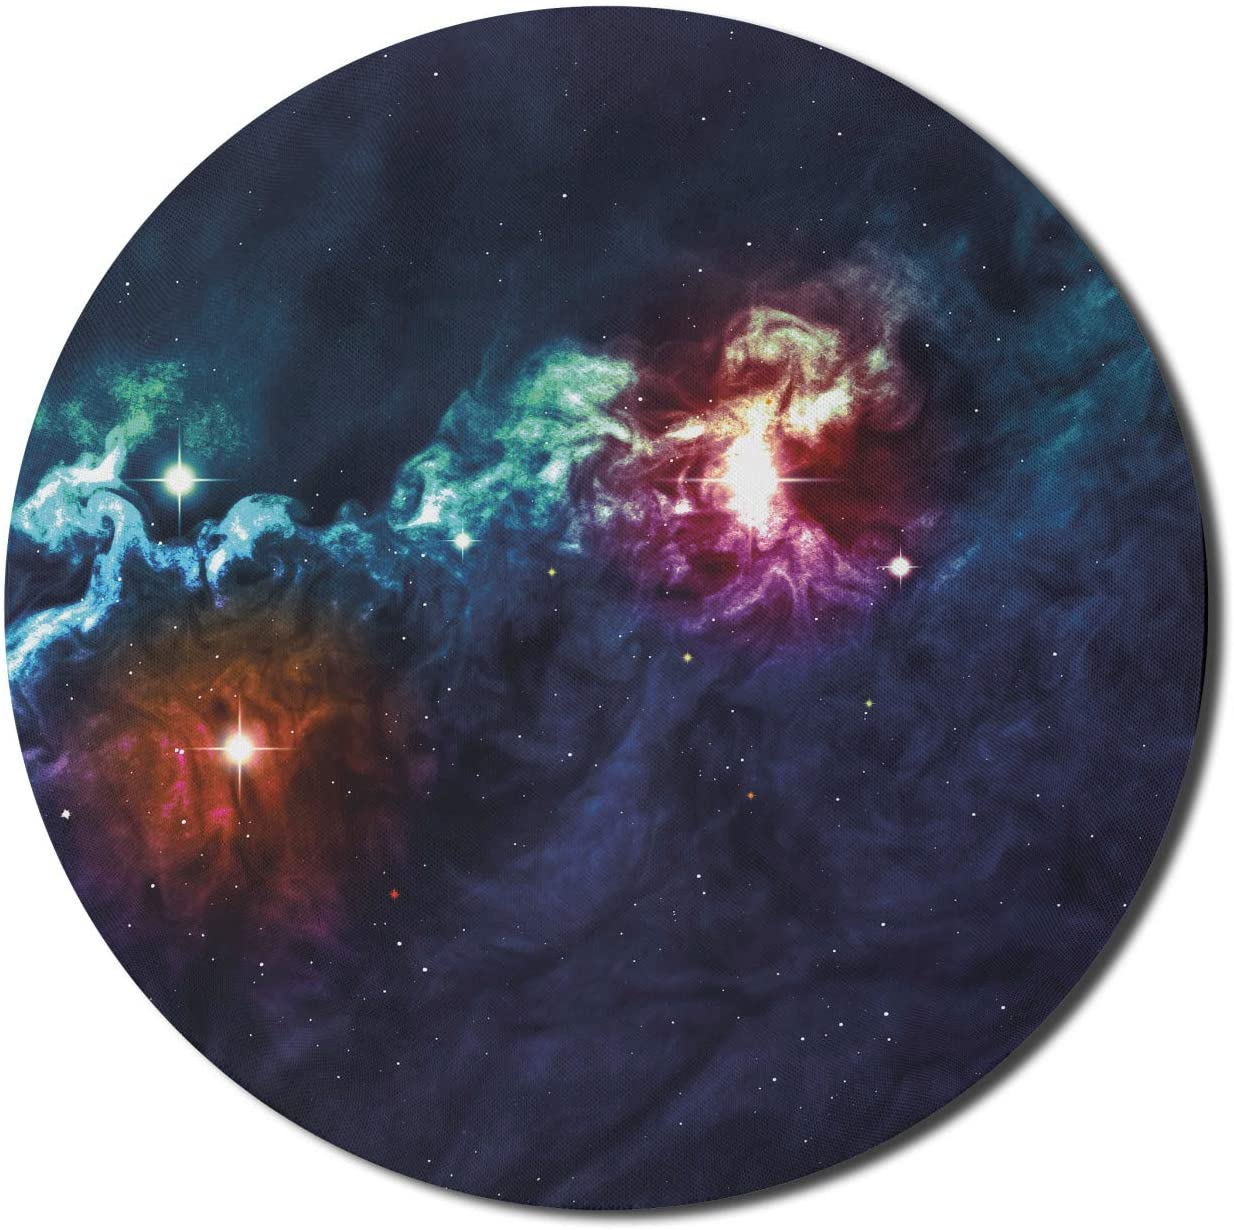 Ambesonne Space Mouse Pad for Computers, Galactic Image on Milky Way with Colorful Alluring Cosmos Display Artwork Print, Round Non-Slip Thick Rubber Modern Gaming Mousepad, 8